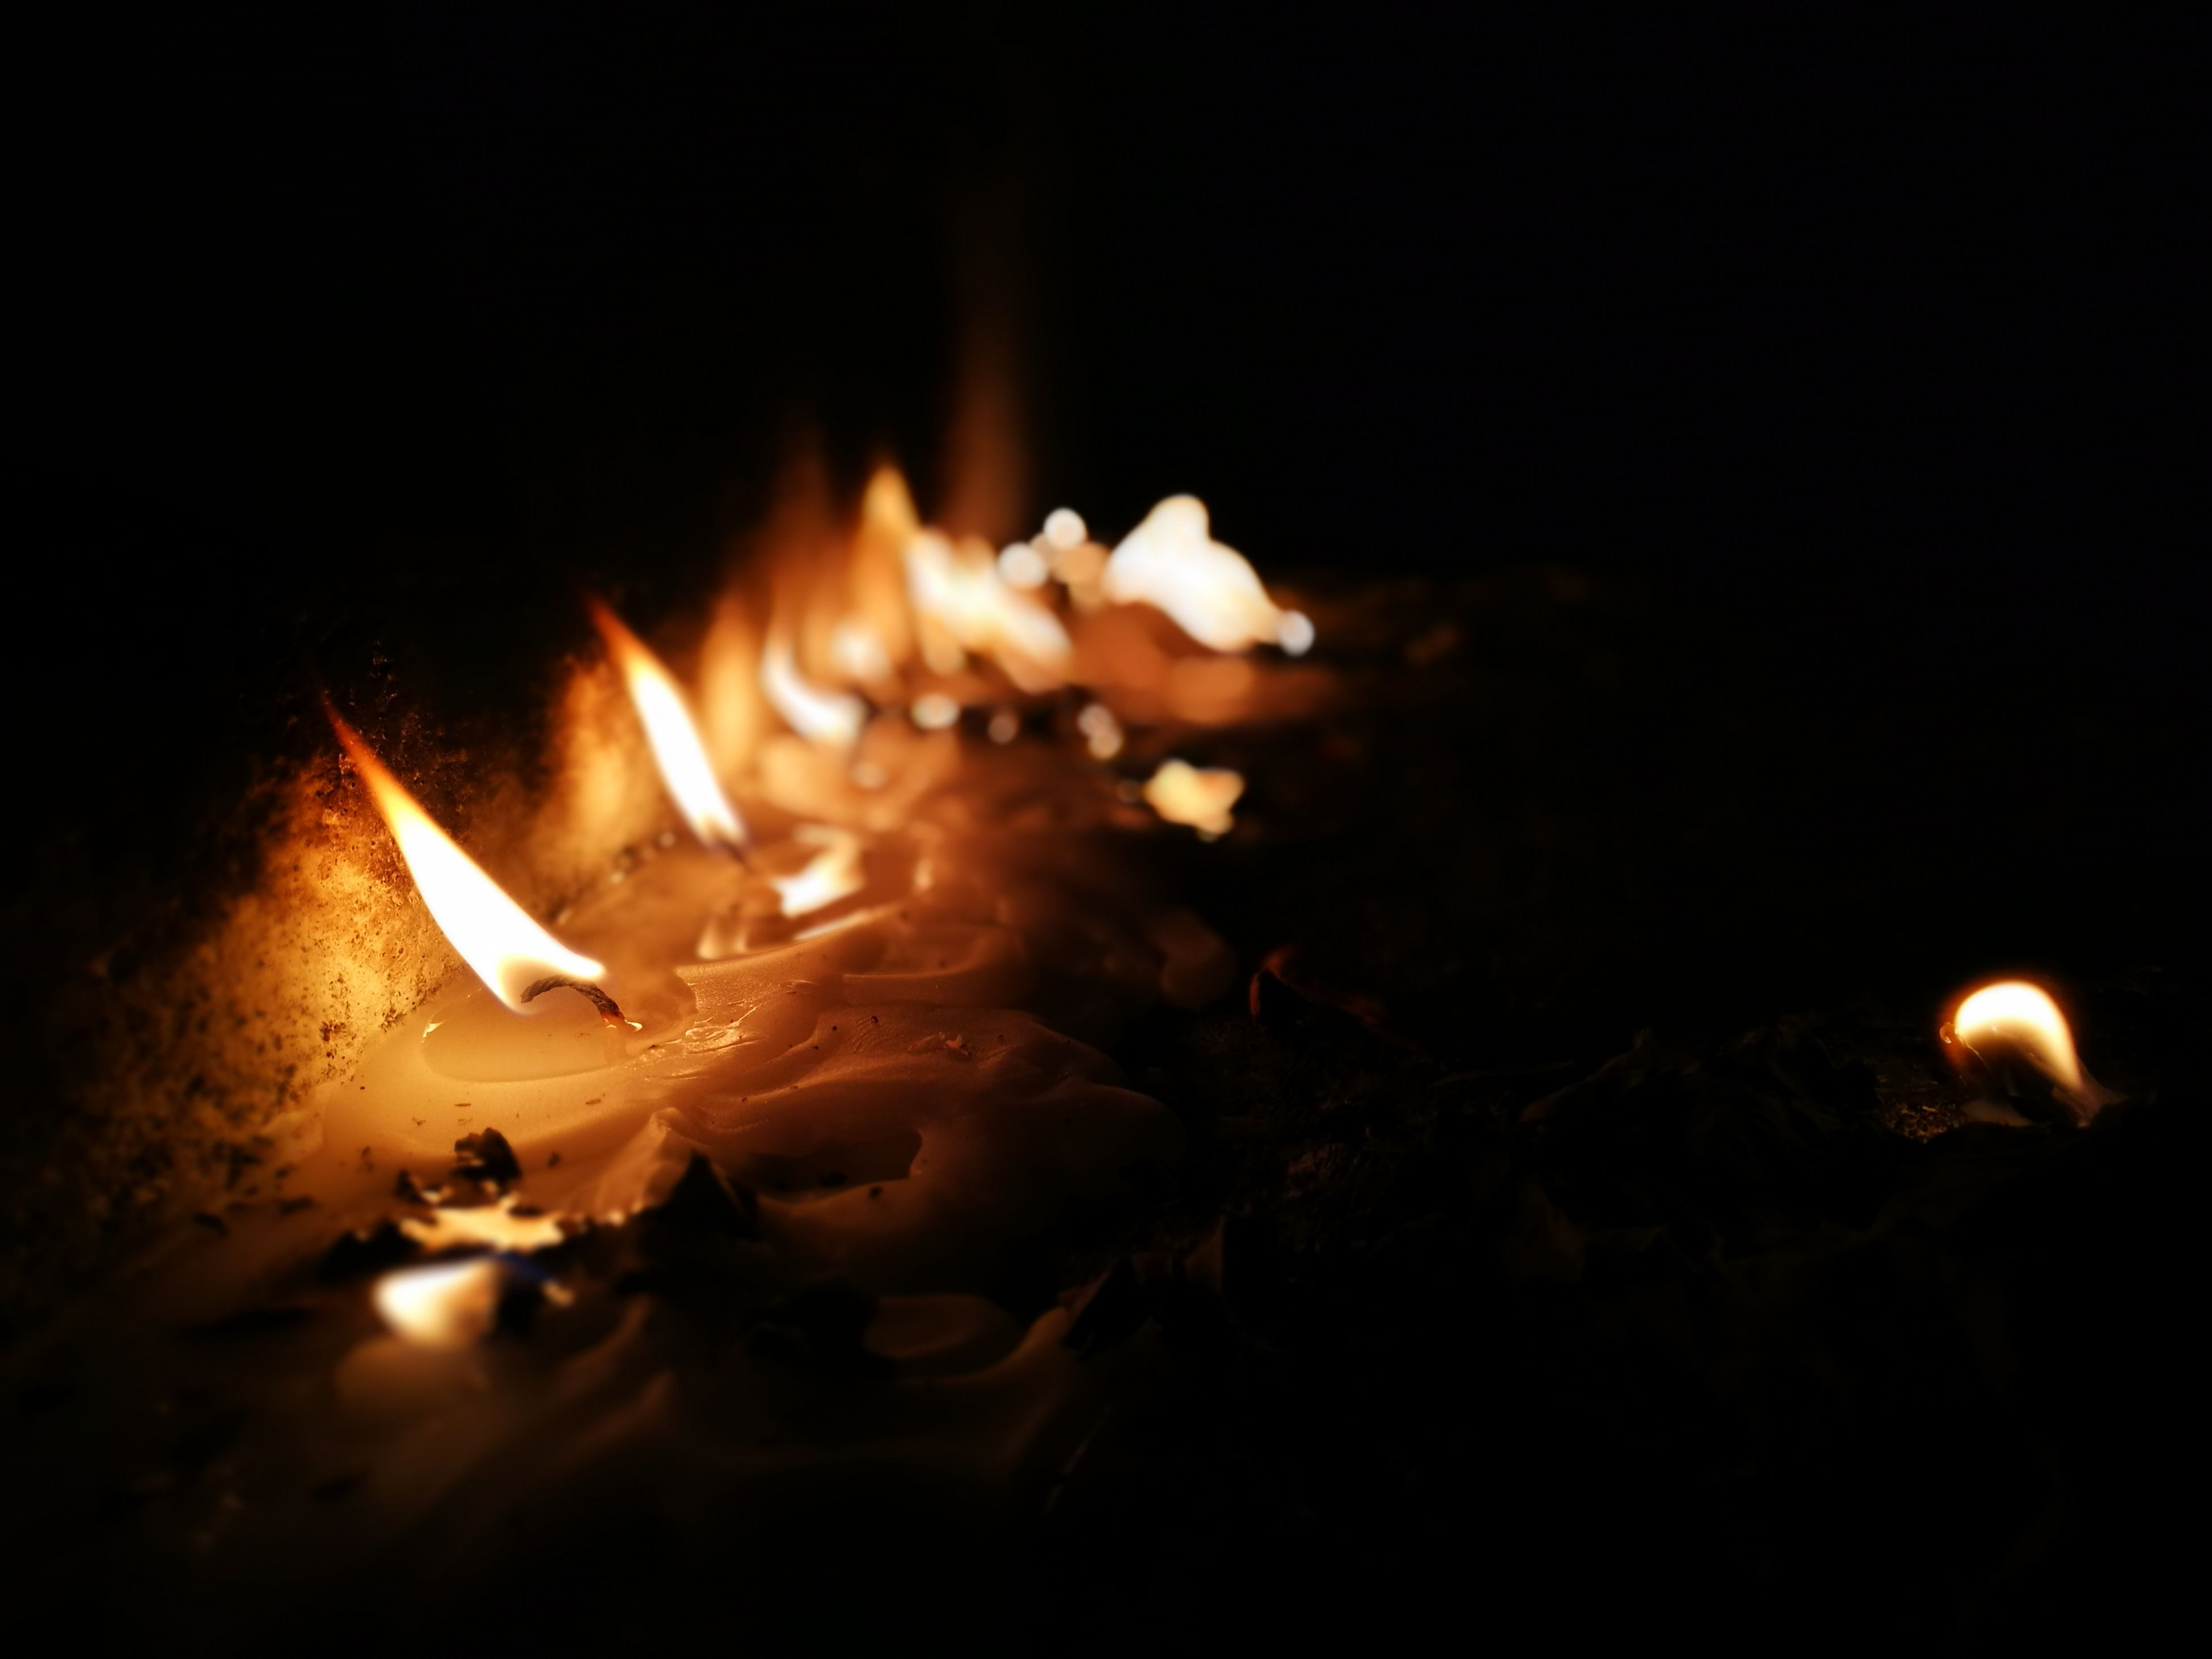 flame, burning, night, heat - temperature, no people, close-up, illuminated, outdoors